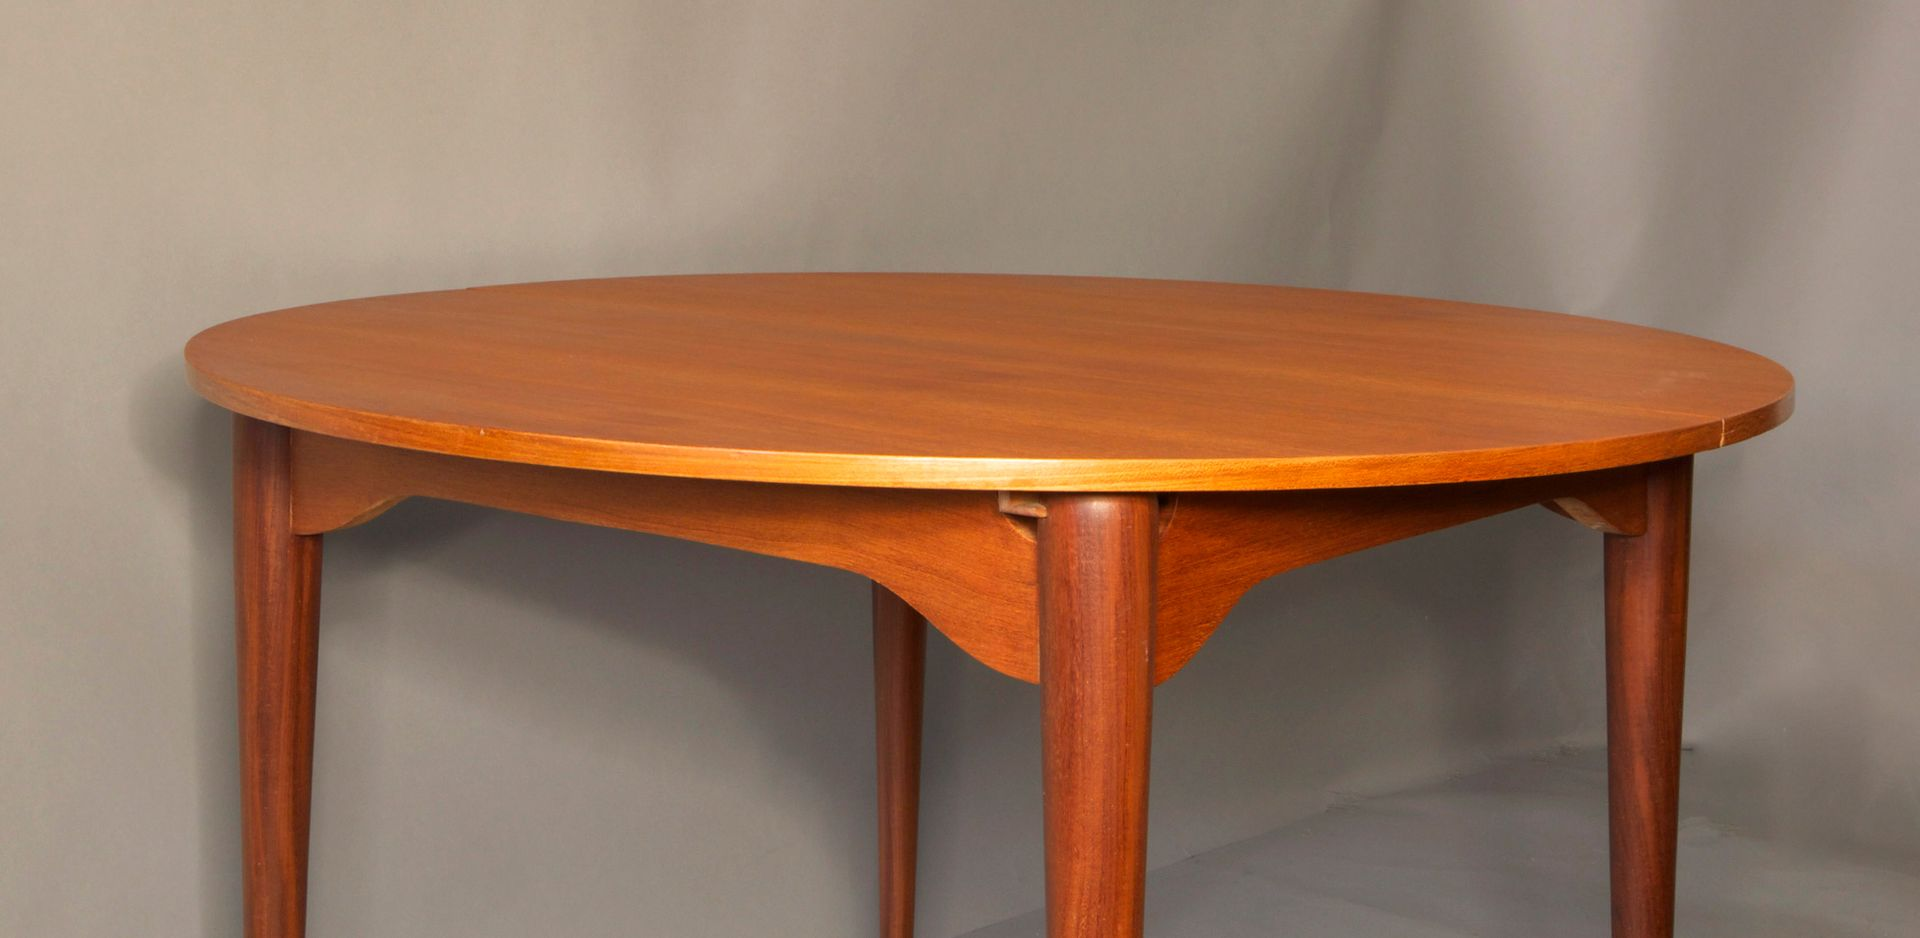 Circular Teak Extendable Dining Table By Hans Olsen 1960s For Sale At Pamono